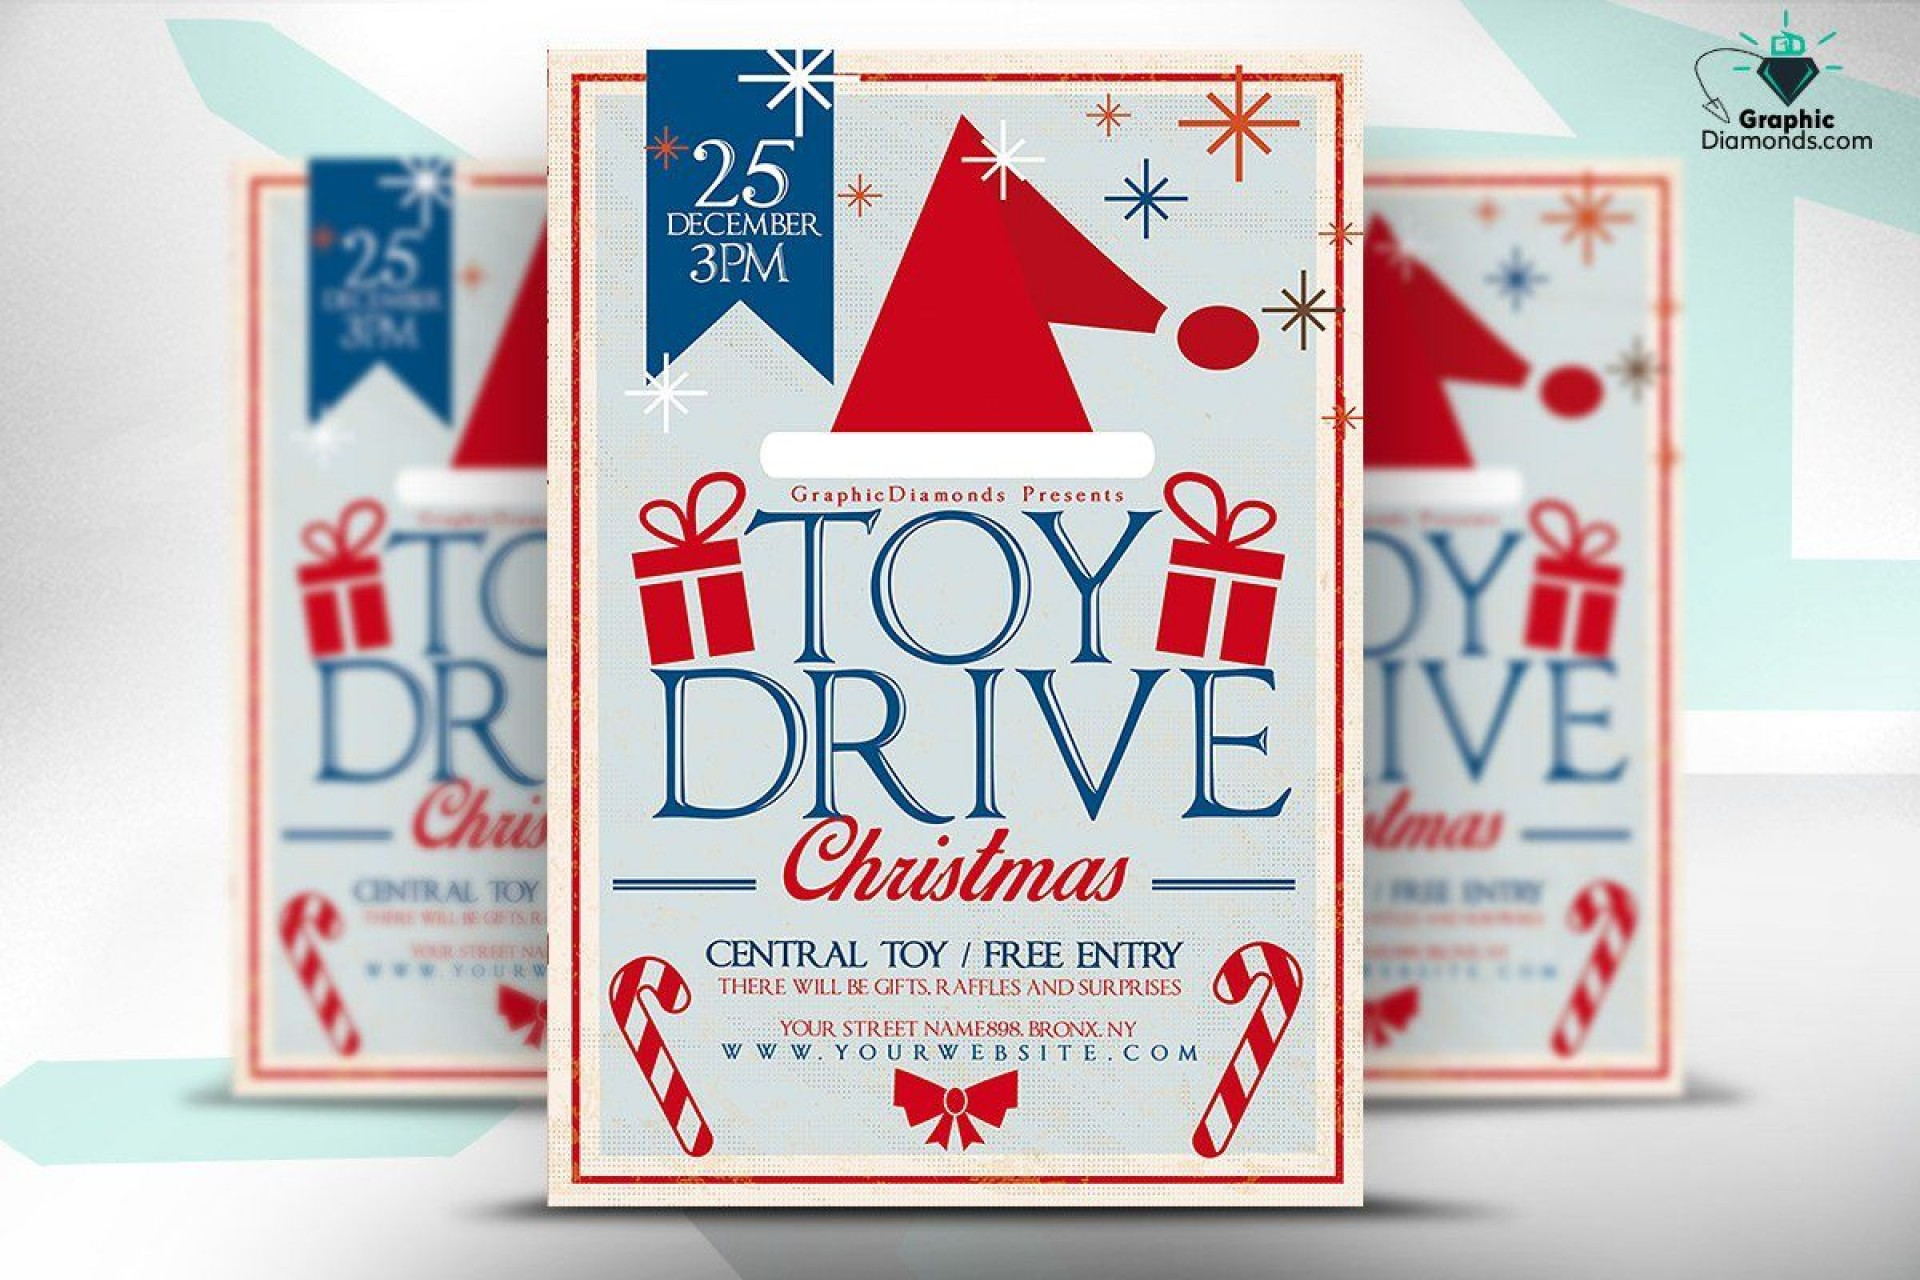 009 Sensational Toy Drive Flyer Template Free Image  Download Christma1920